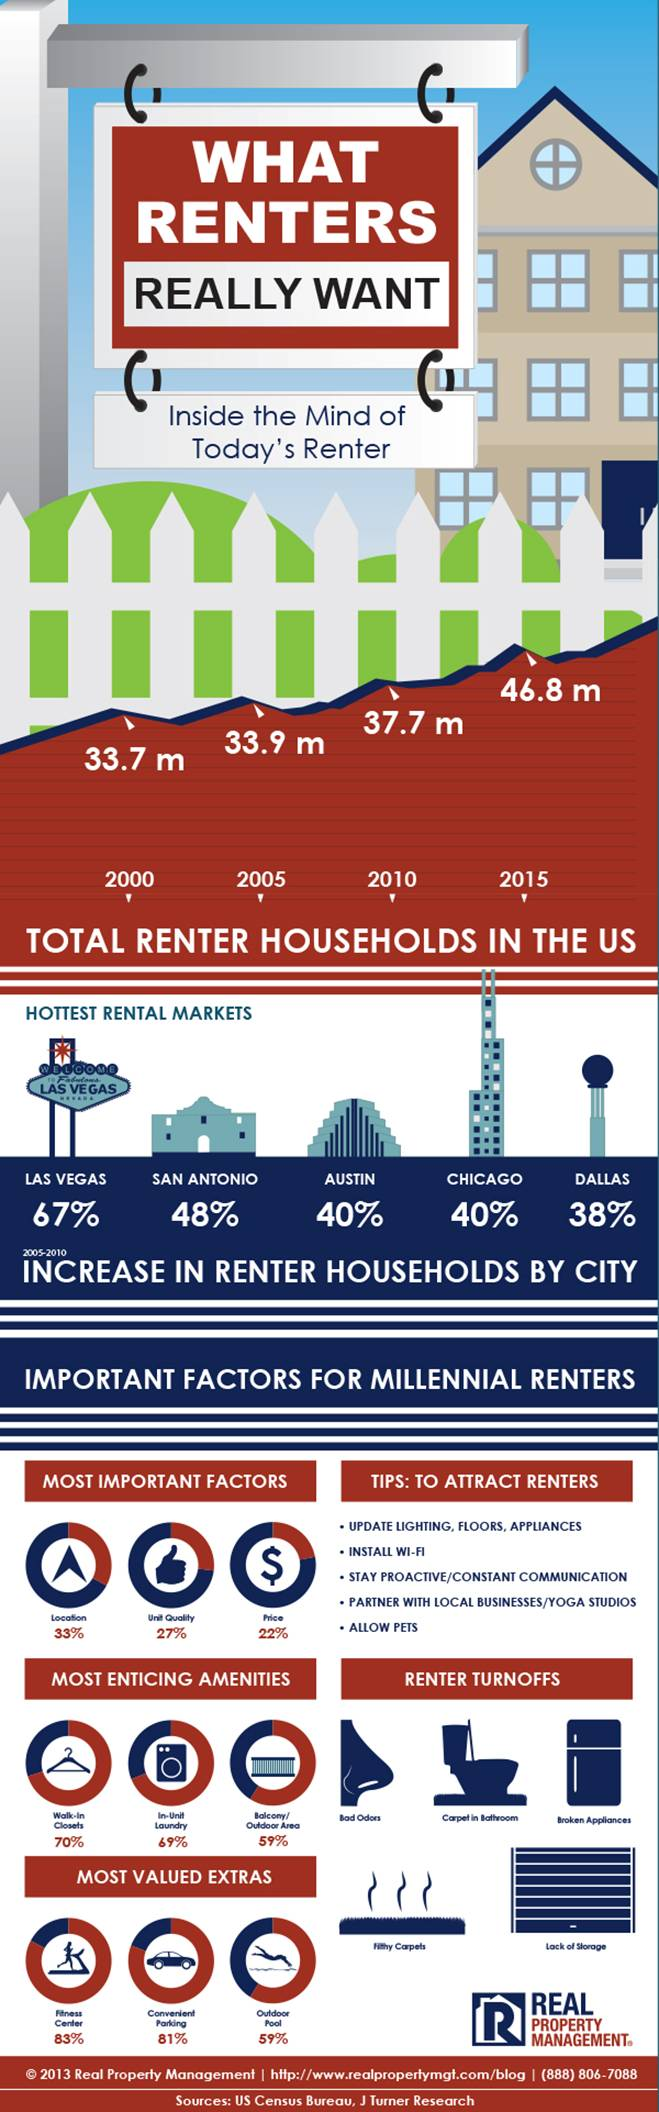 Hottest Rental Markets in the US